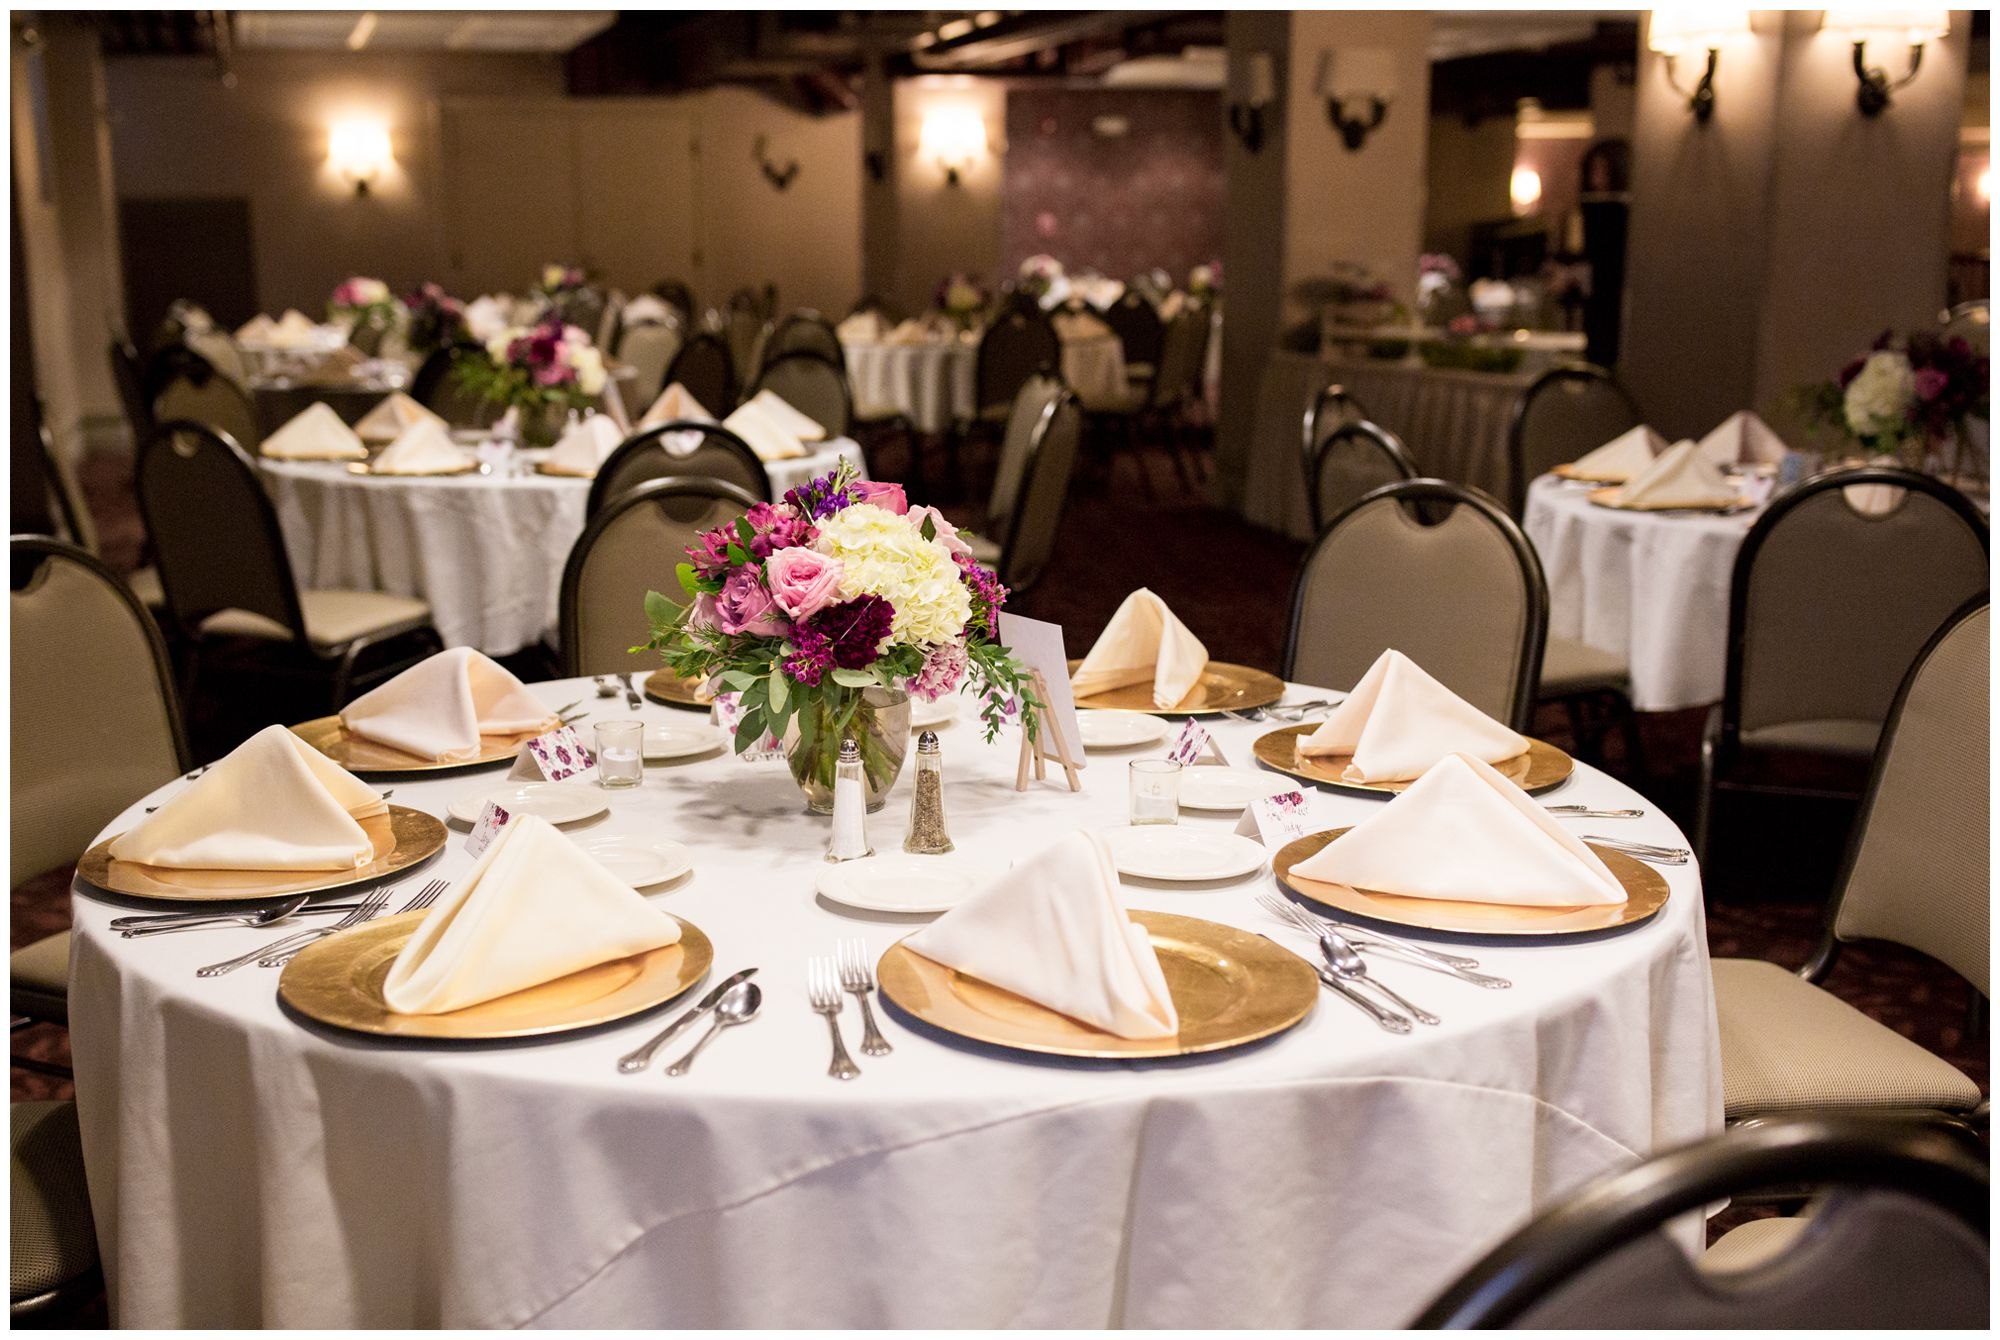 Charley Creek Inn Wabash Indiana wedding reception